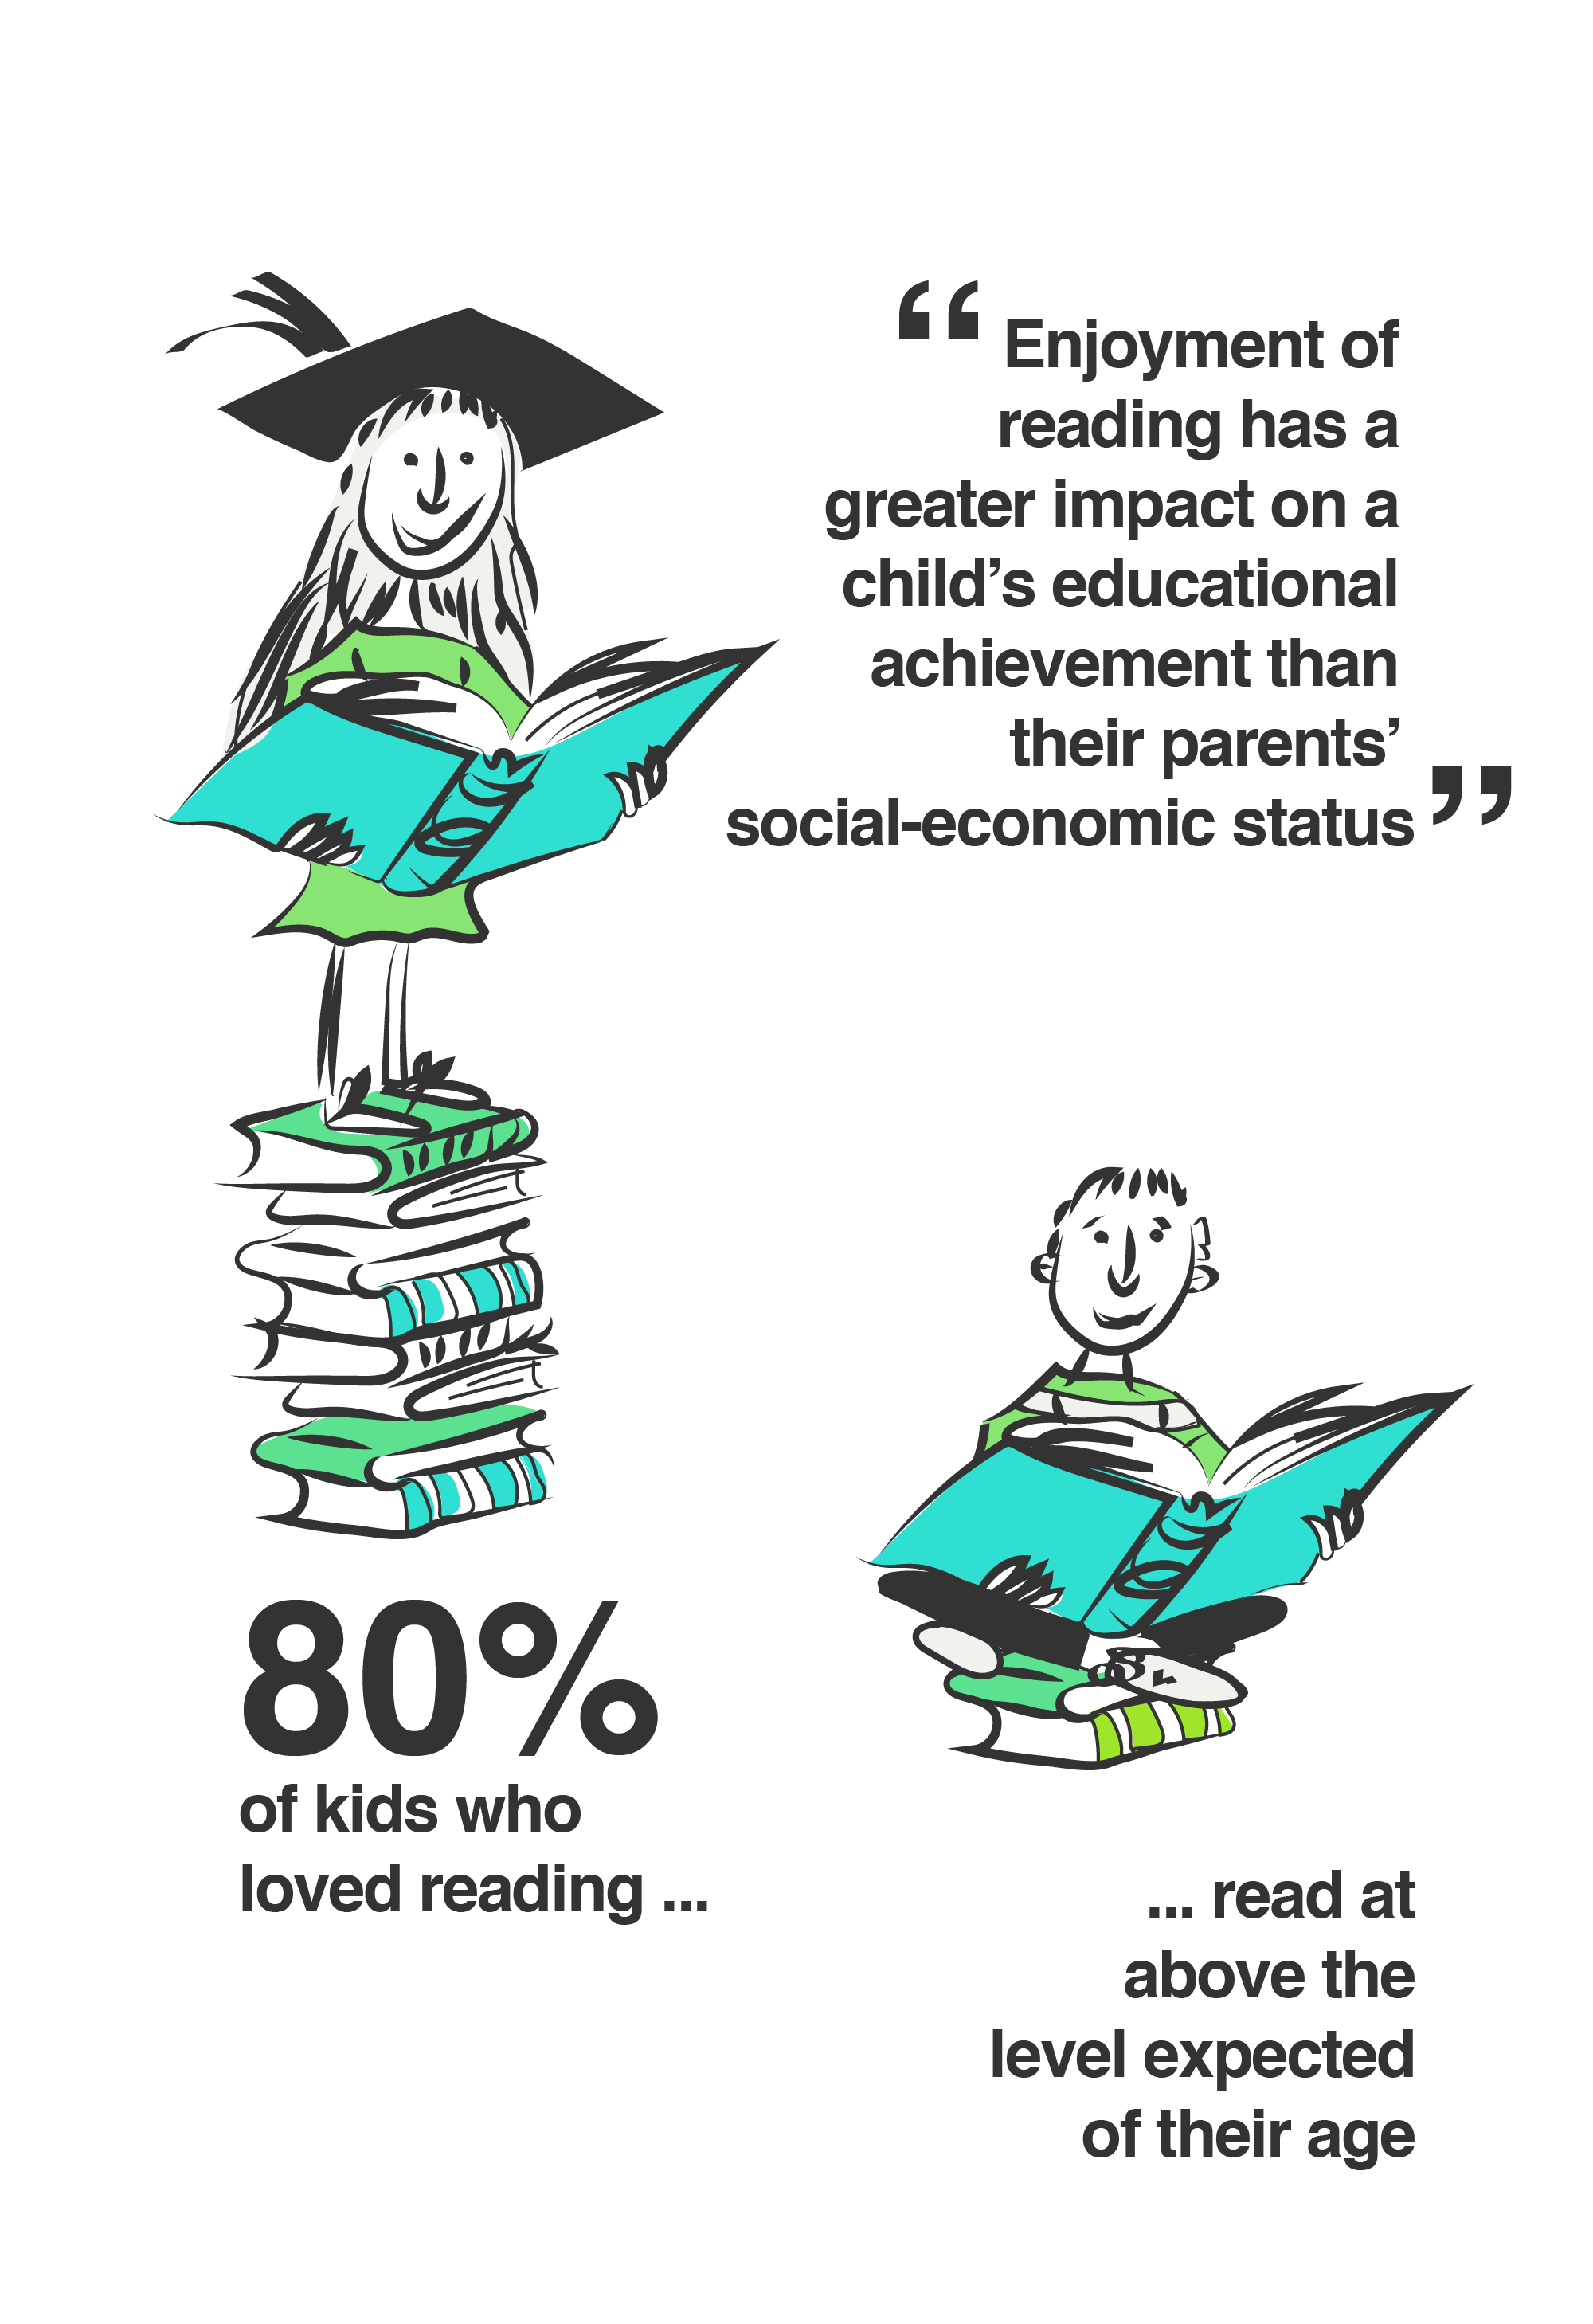 Children who love reading do well at school.